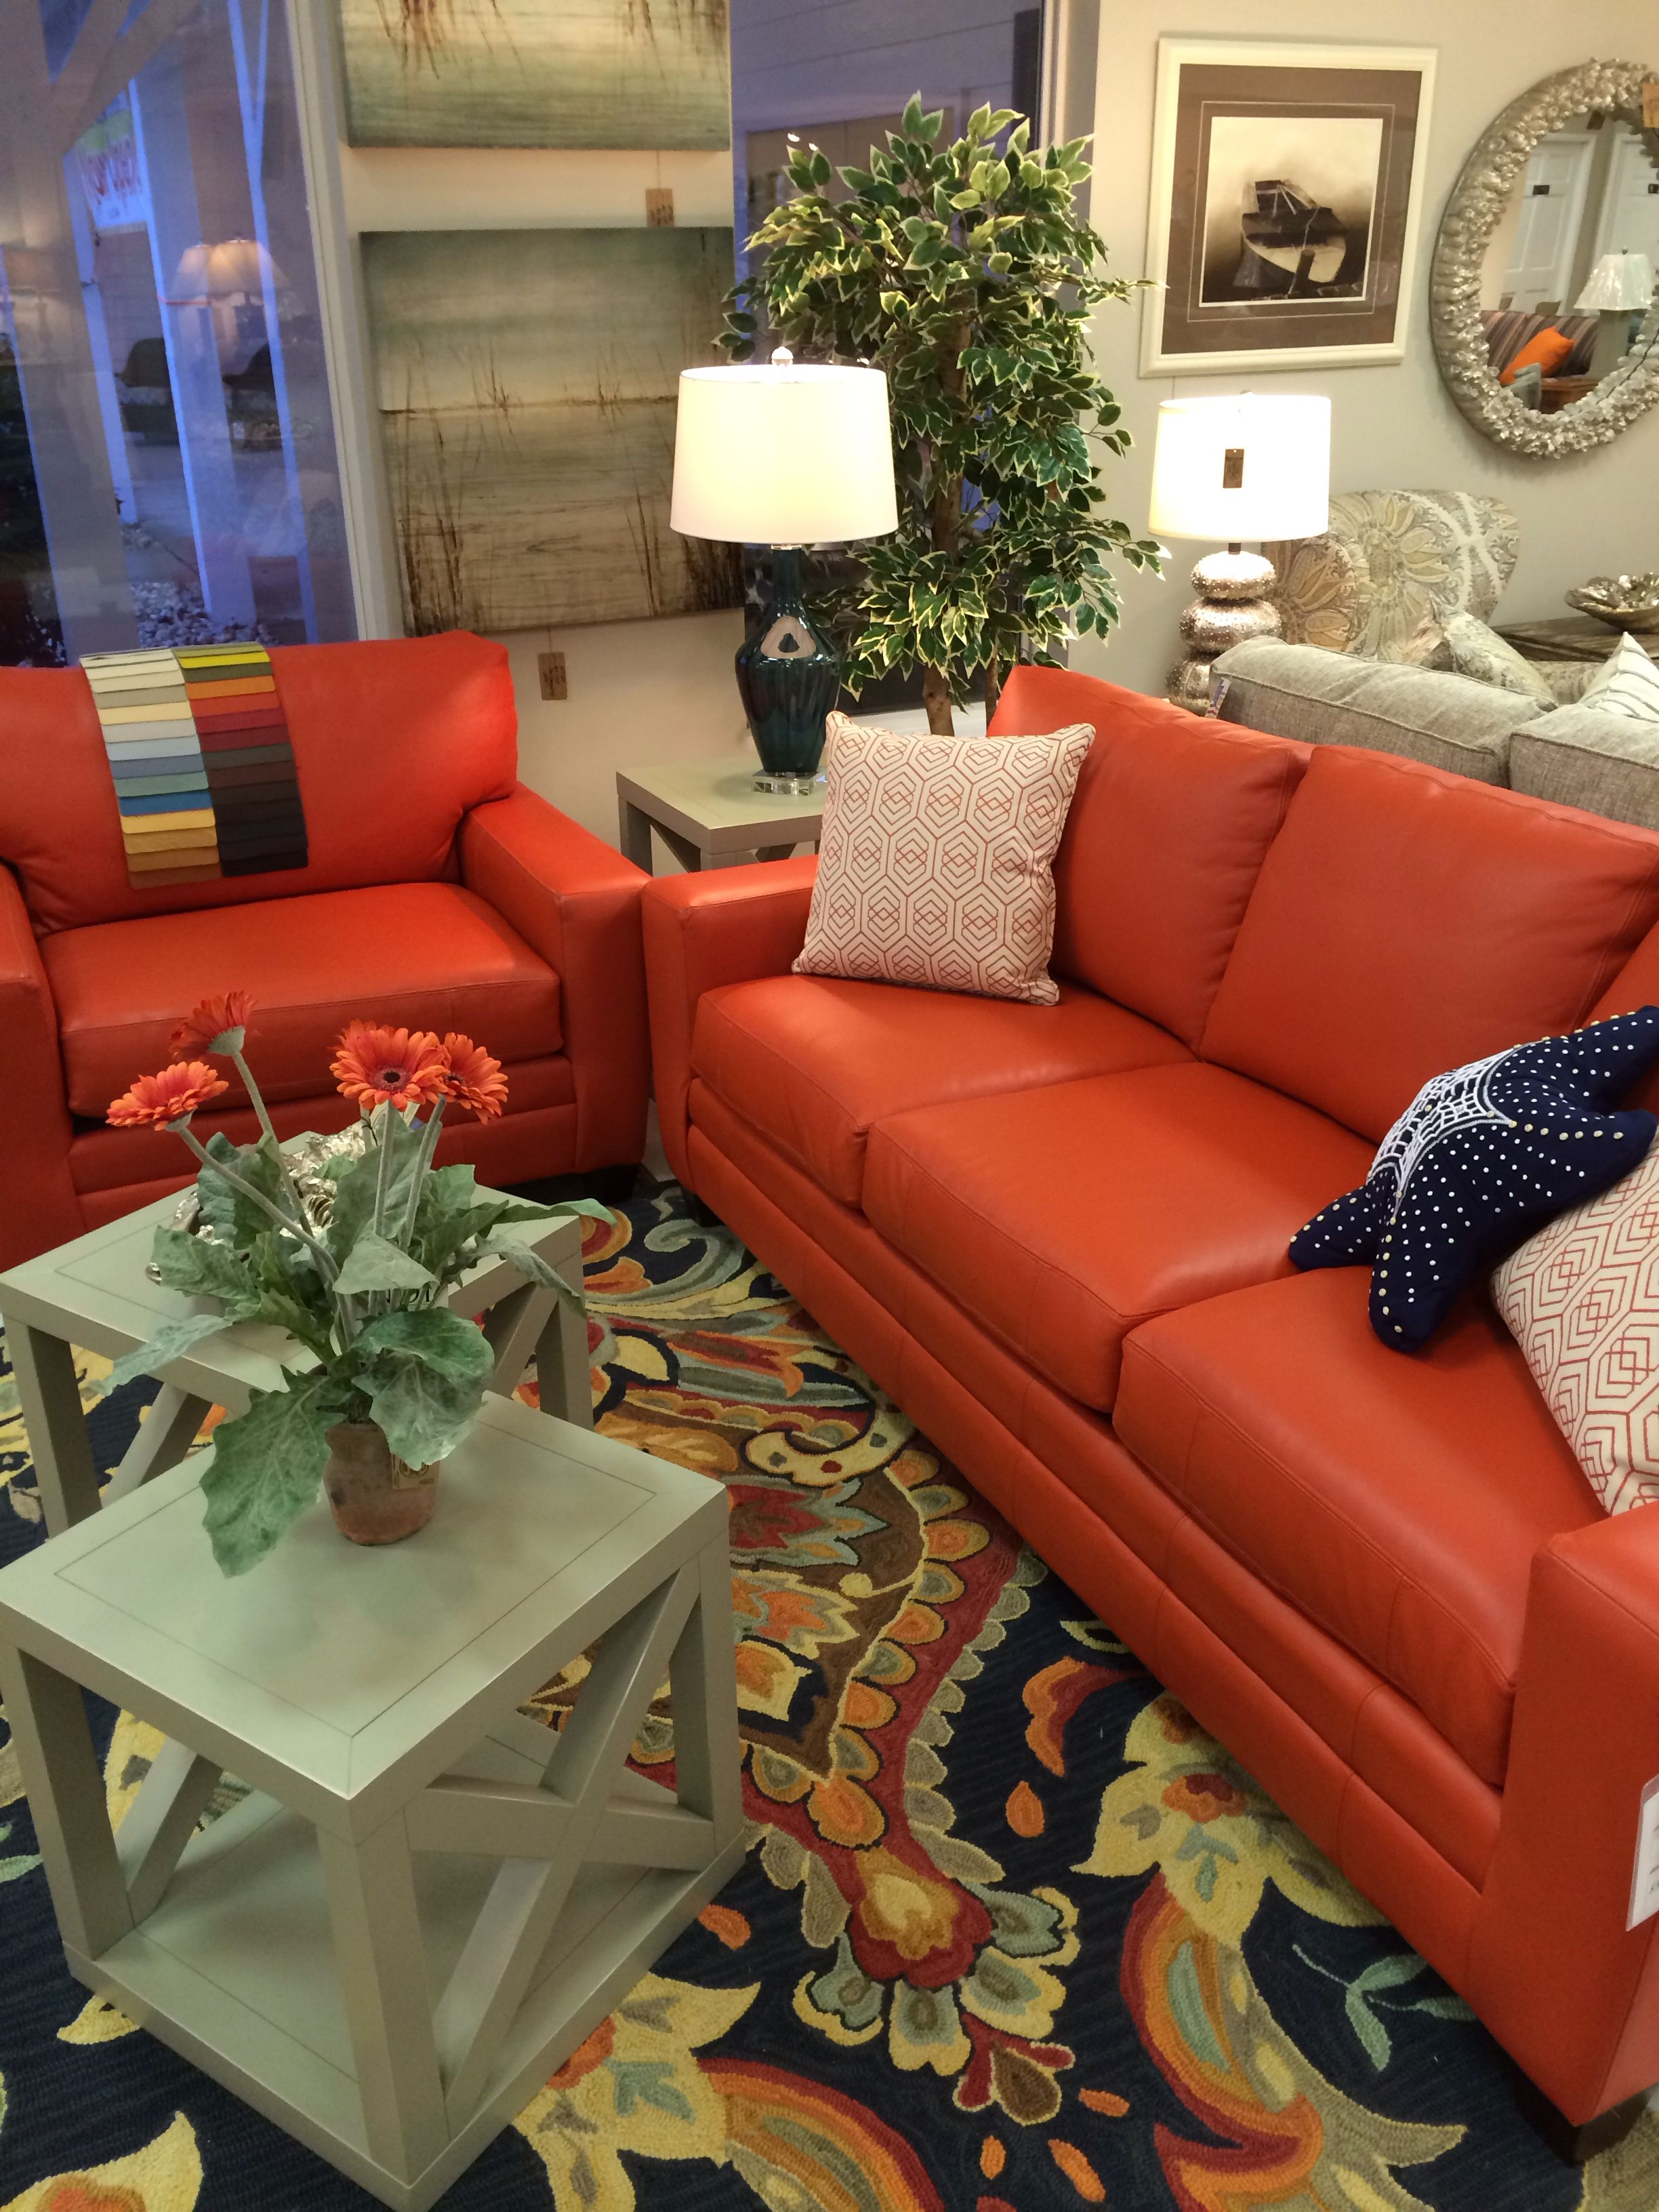 A Juicy Papaya Orange Leather Sofa U0026 Oversized Chair. A Waterfall Of Colors  To Choose From. Gorgeous U0026 Comfortable   At Outer Banks Furniture Kitty  Hawk.